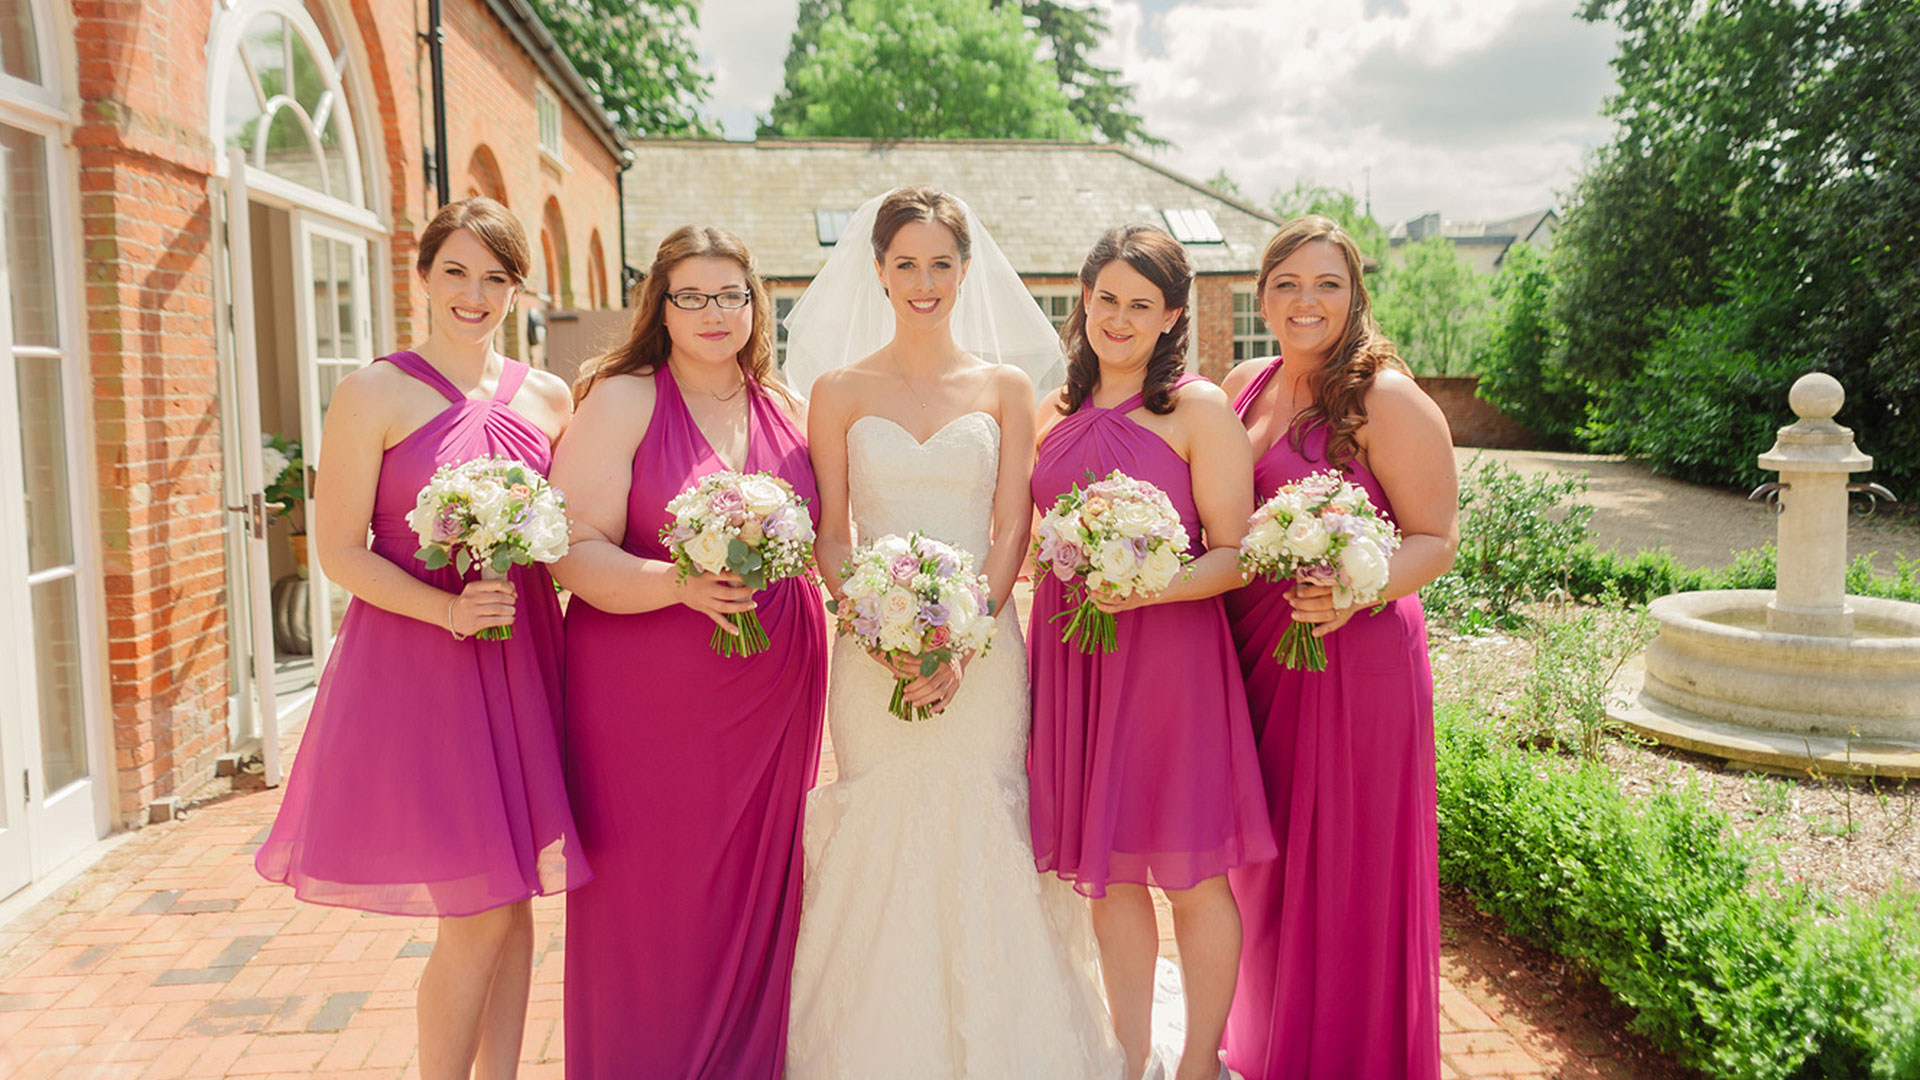 A beautiful bridesmaid stands with her bridesmaids outside of the Coach House - wedding venues in Essex